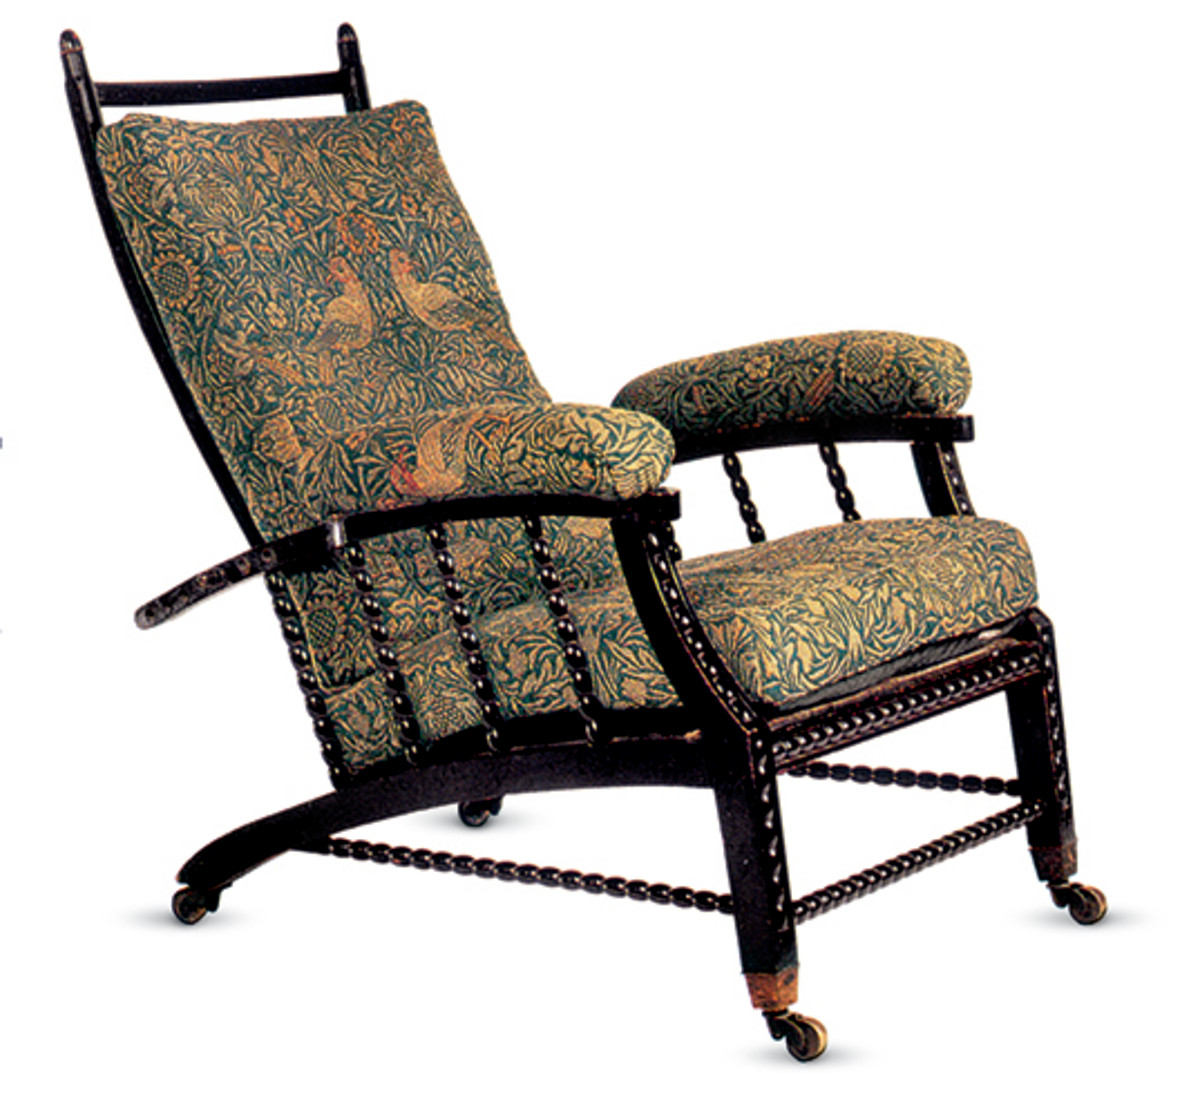 Superieur Evolution Of The Morris Chair